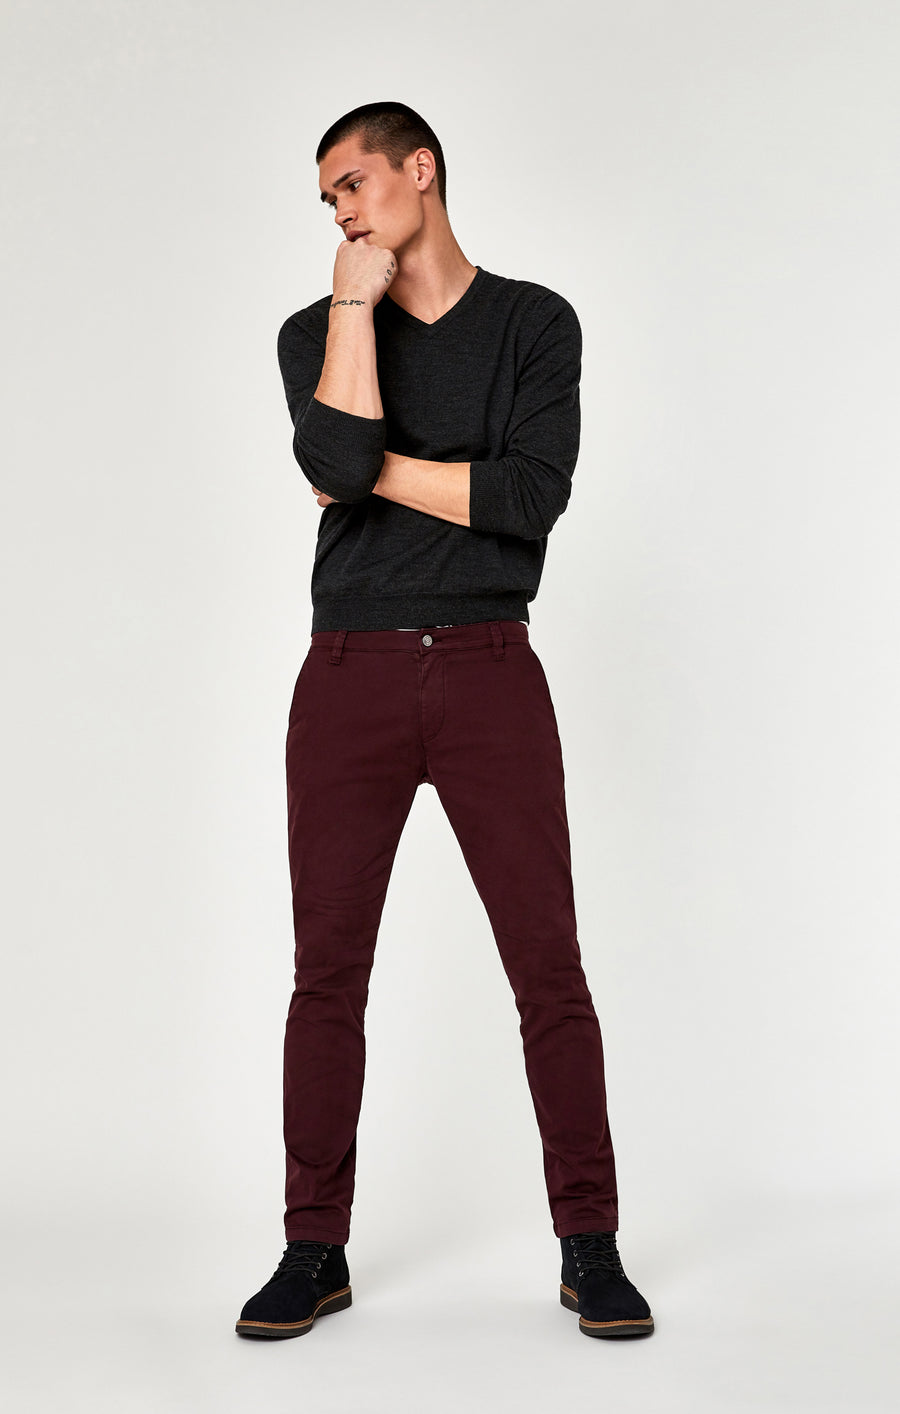 JOHNNY SLIM LEG CHINO IN DARK BURGUNDY TWILL - Mavi Jeans